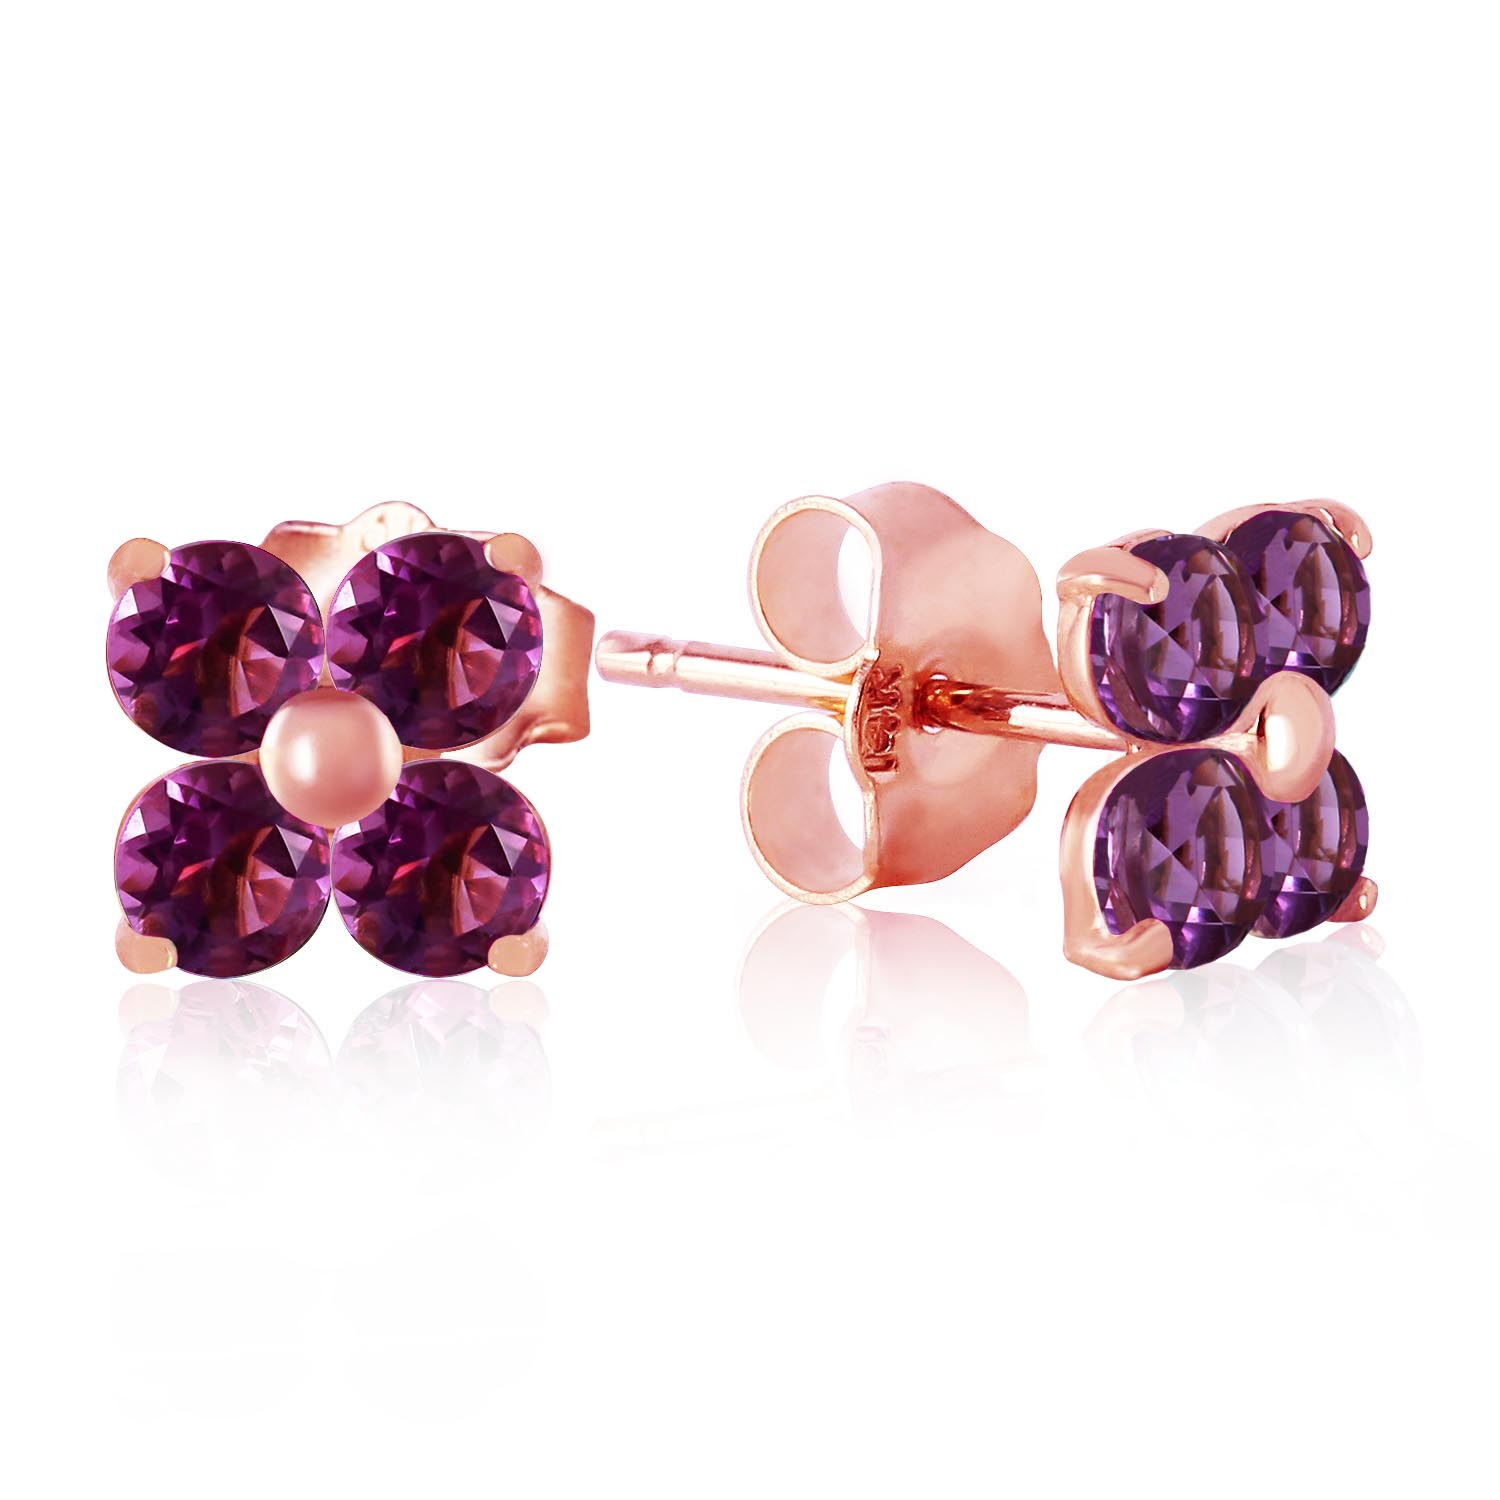 Bargain Amethyst Clover Stud Earrings 1.15ctw in 9ct Rose Gold Stockists